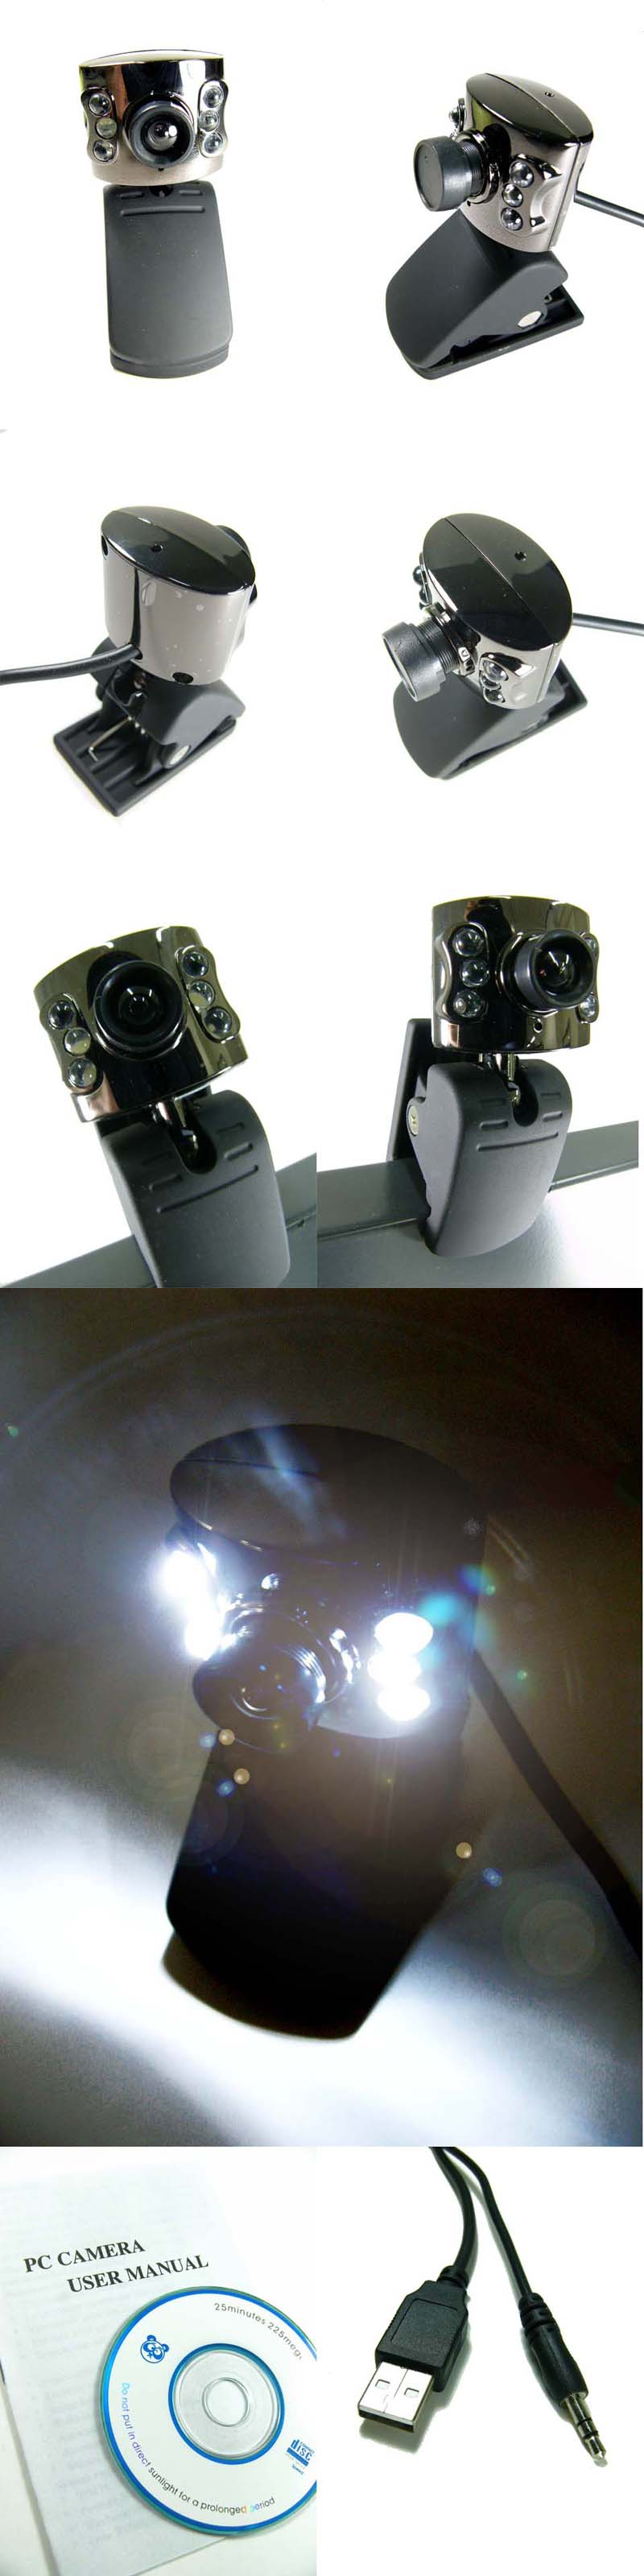 WEB-CAM with BUILT IN MIC and AUTO LIGHTING!